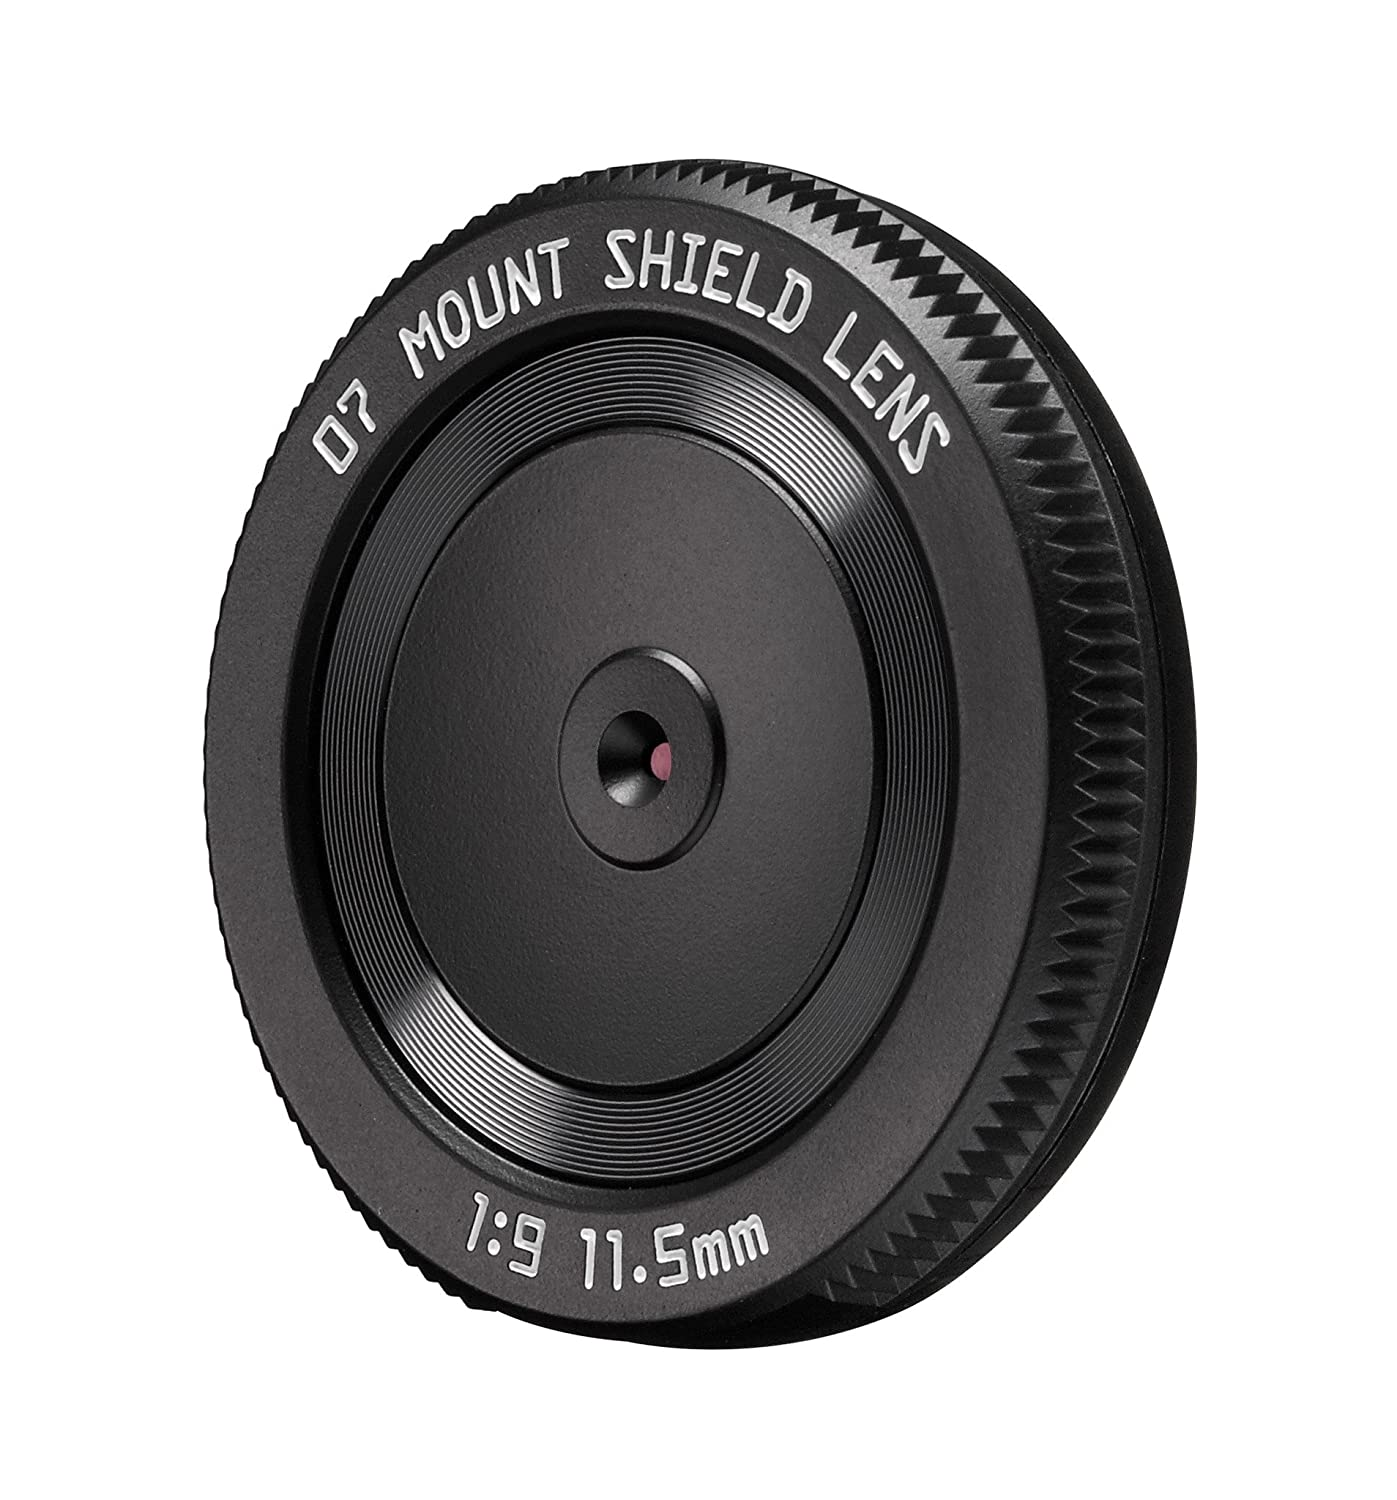 Pentax 07 11.5mm f/9 Mount Shield Lens (53mm - 35mm equivalent), for Q-Series Cameras 22267